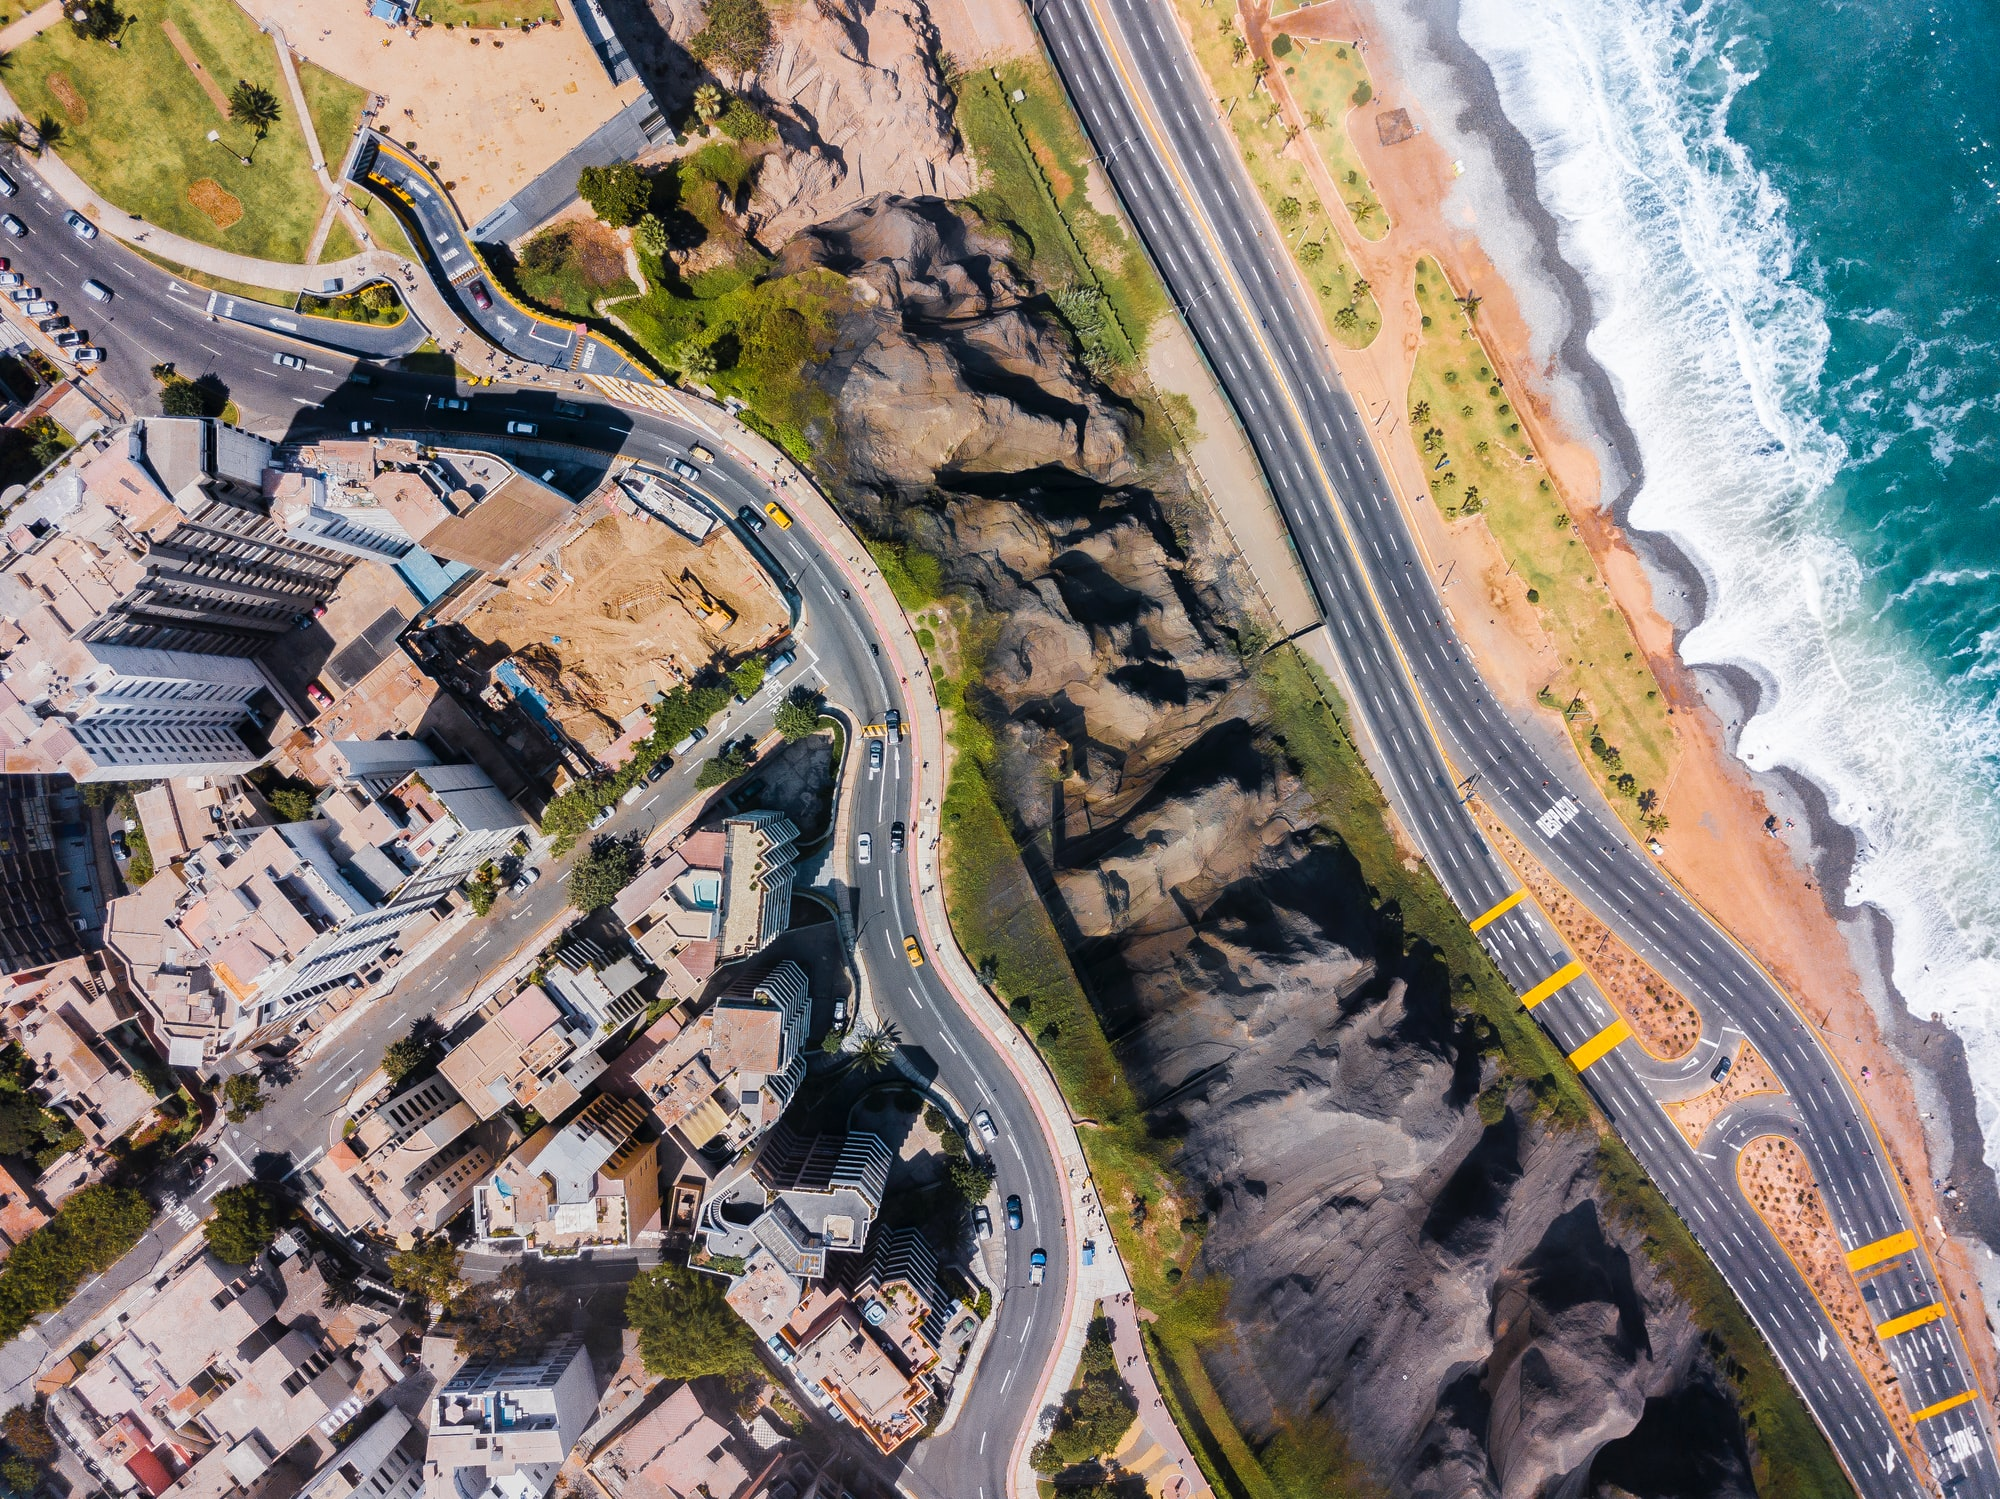 Miraflores from Above